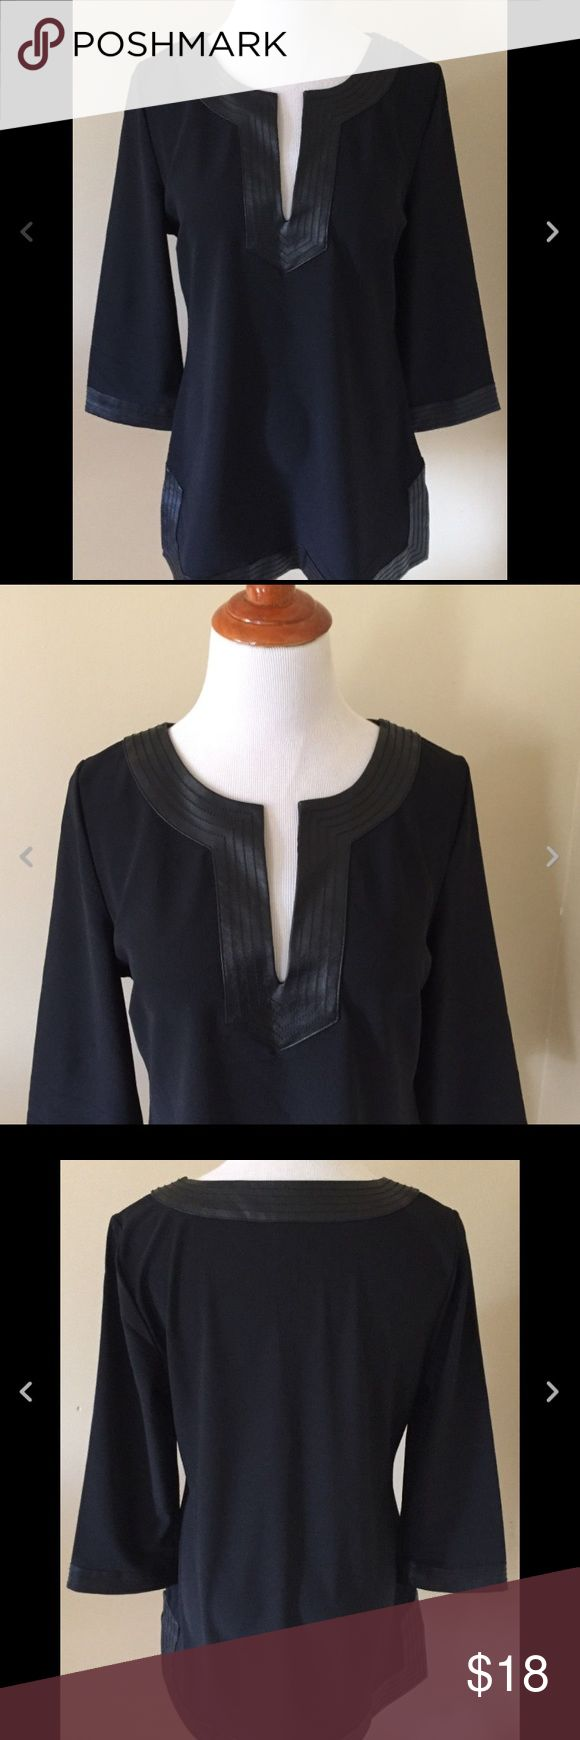 Boston Proper Black Vinyl Trim Top sz M Very good condition. Measures about 18 inches across the chest, 29 inches in length and a 19 inch sleeve Boston Proper Tops Blouses